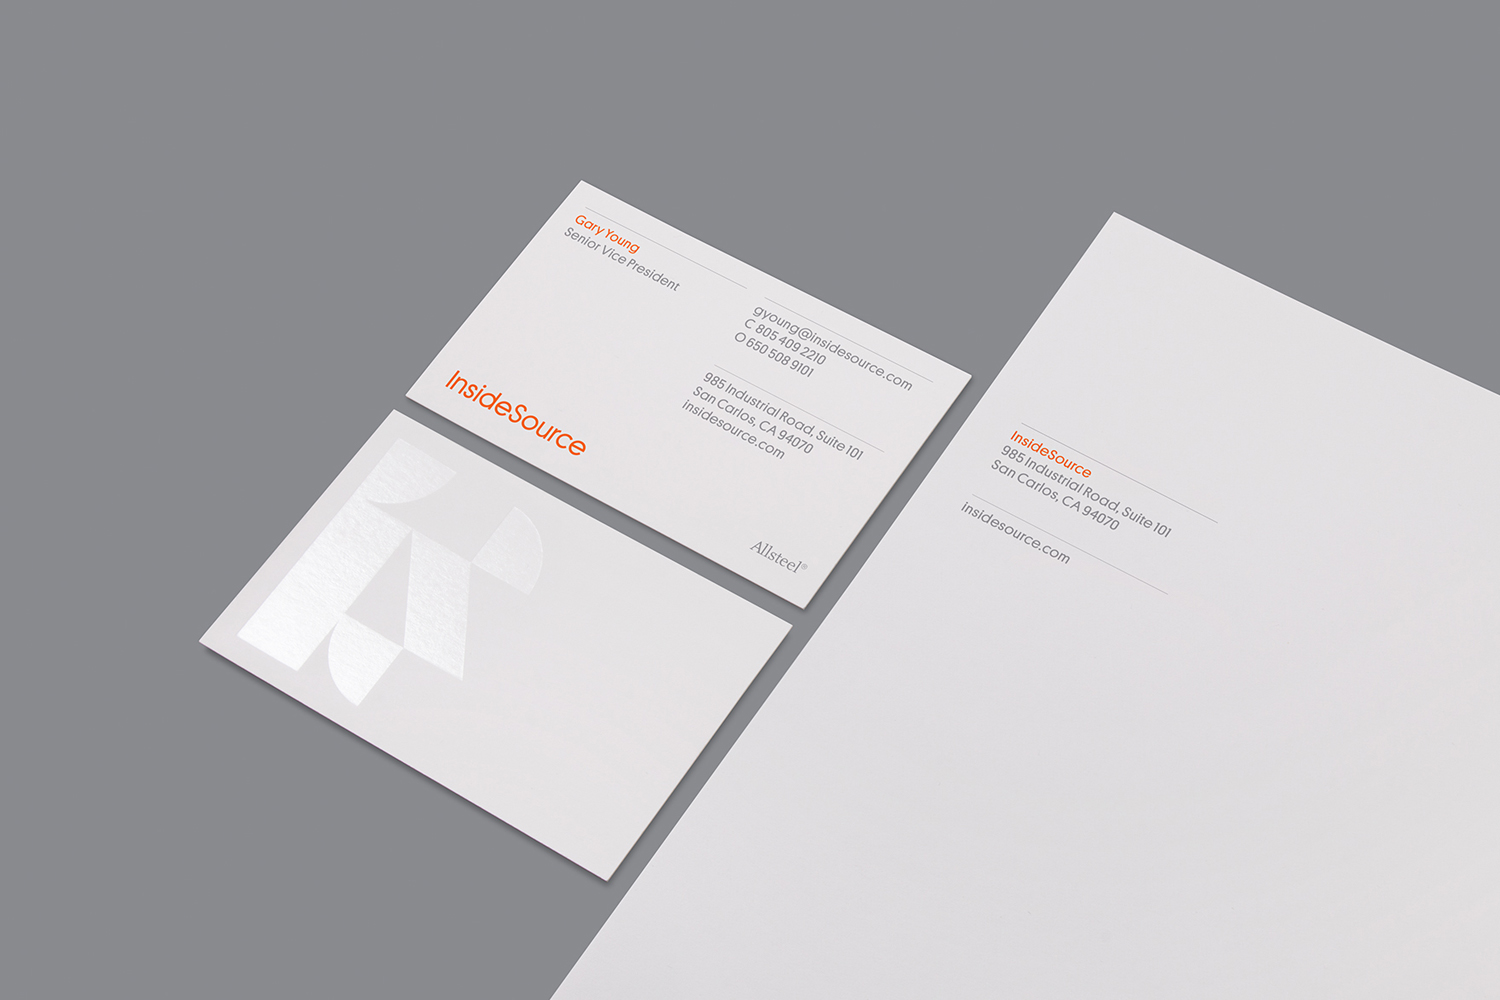 Cleared foiled business cards for InsideSource designed by Mucho